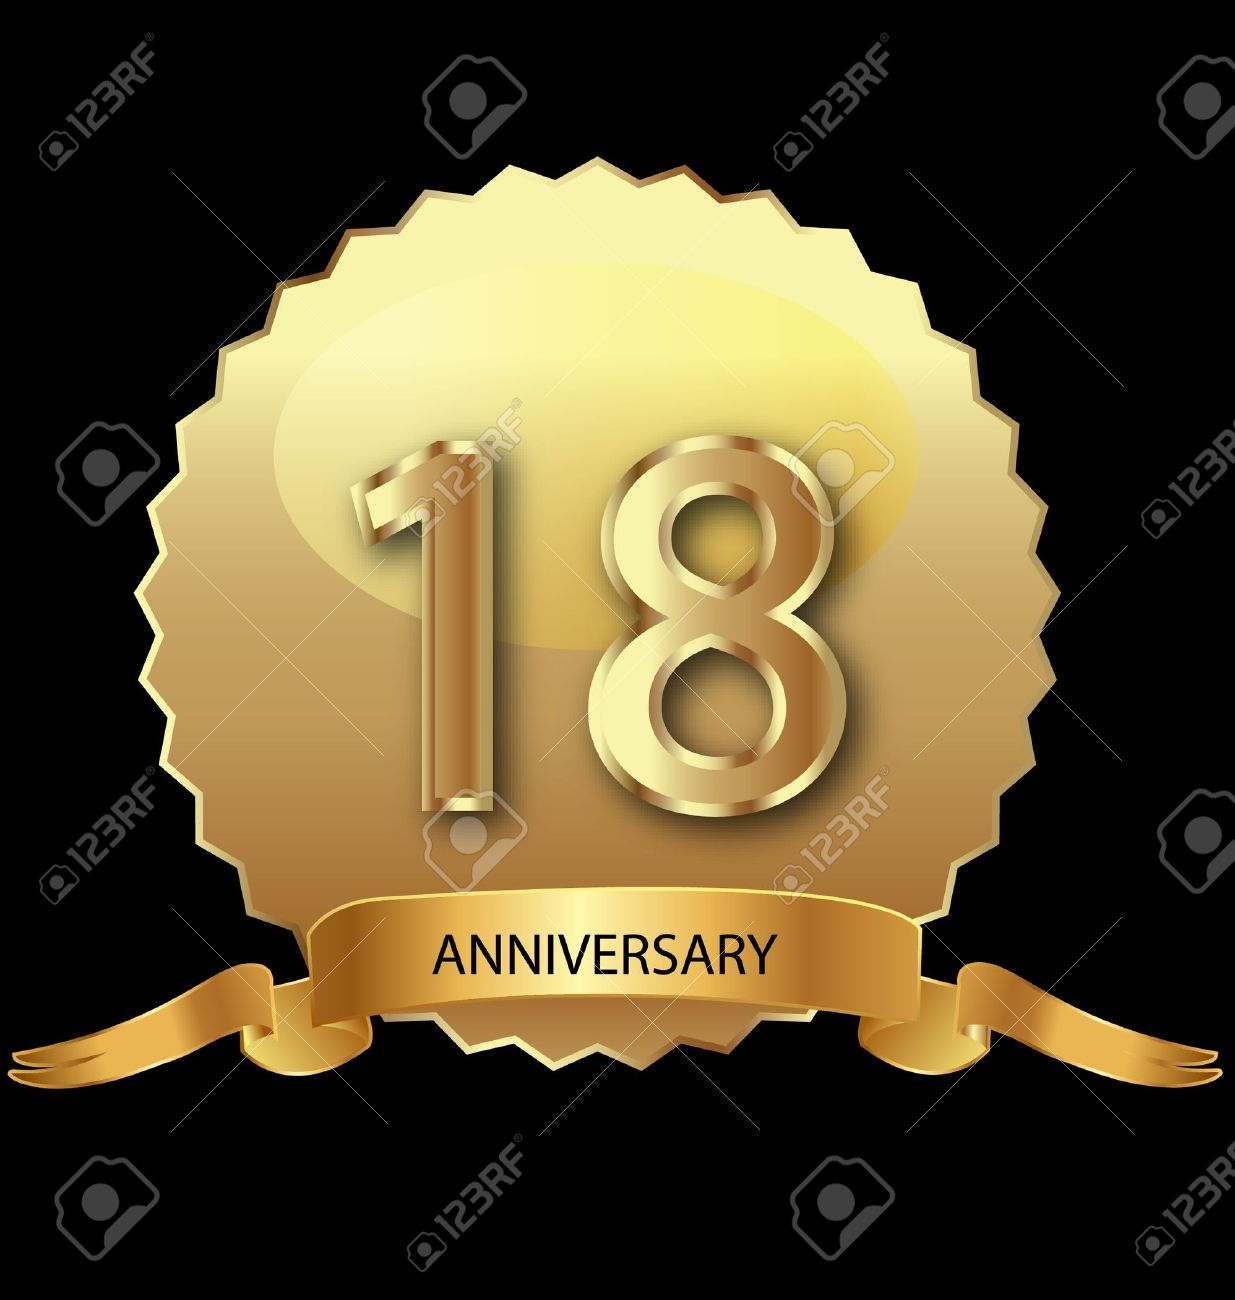 18th anniversary in gold seal royalty free cliparts vectors and 18th anniversary in gold seal stock vector 13879968 buycottarizona